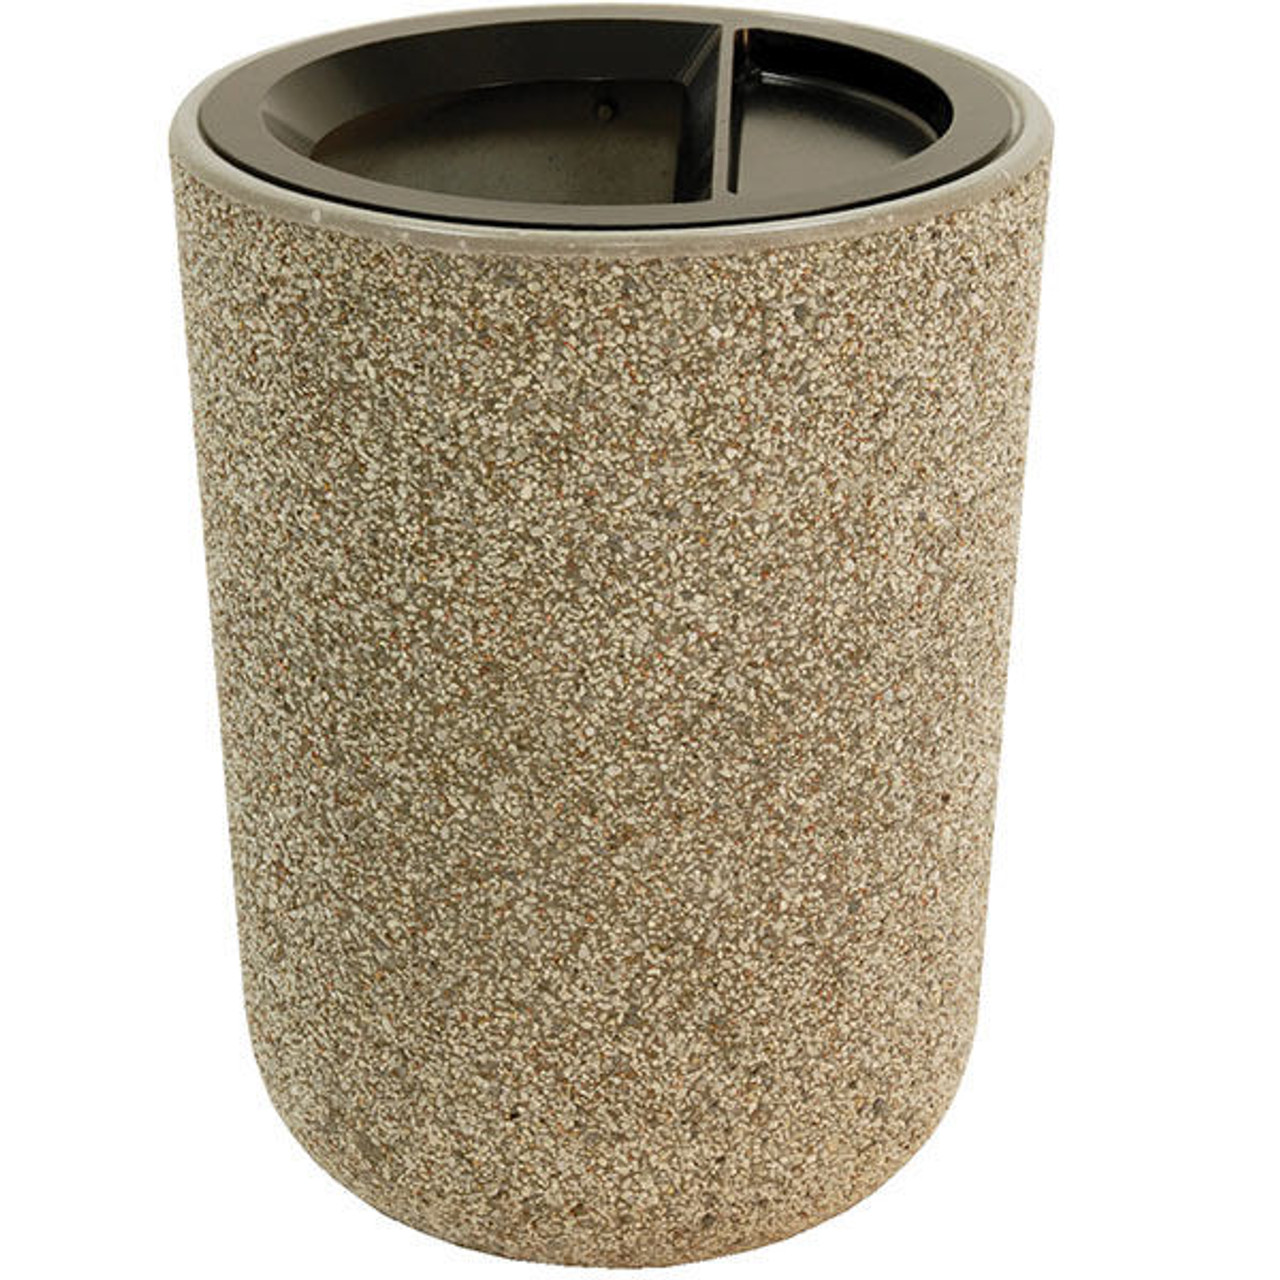 31 Gallon Concrete Ash Trash Top Outdoor Waste Container TF1086 TF1086 Exposed Aggregate